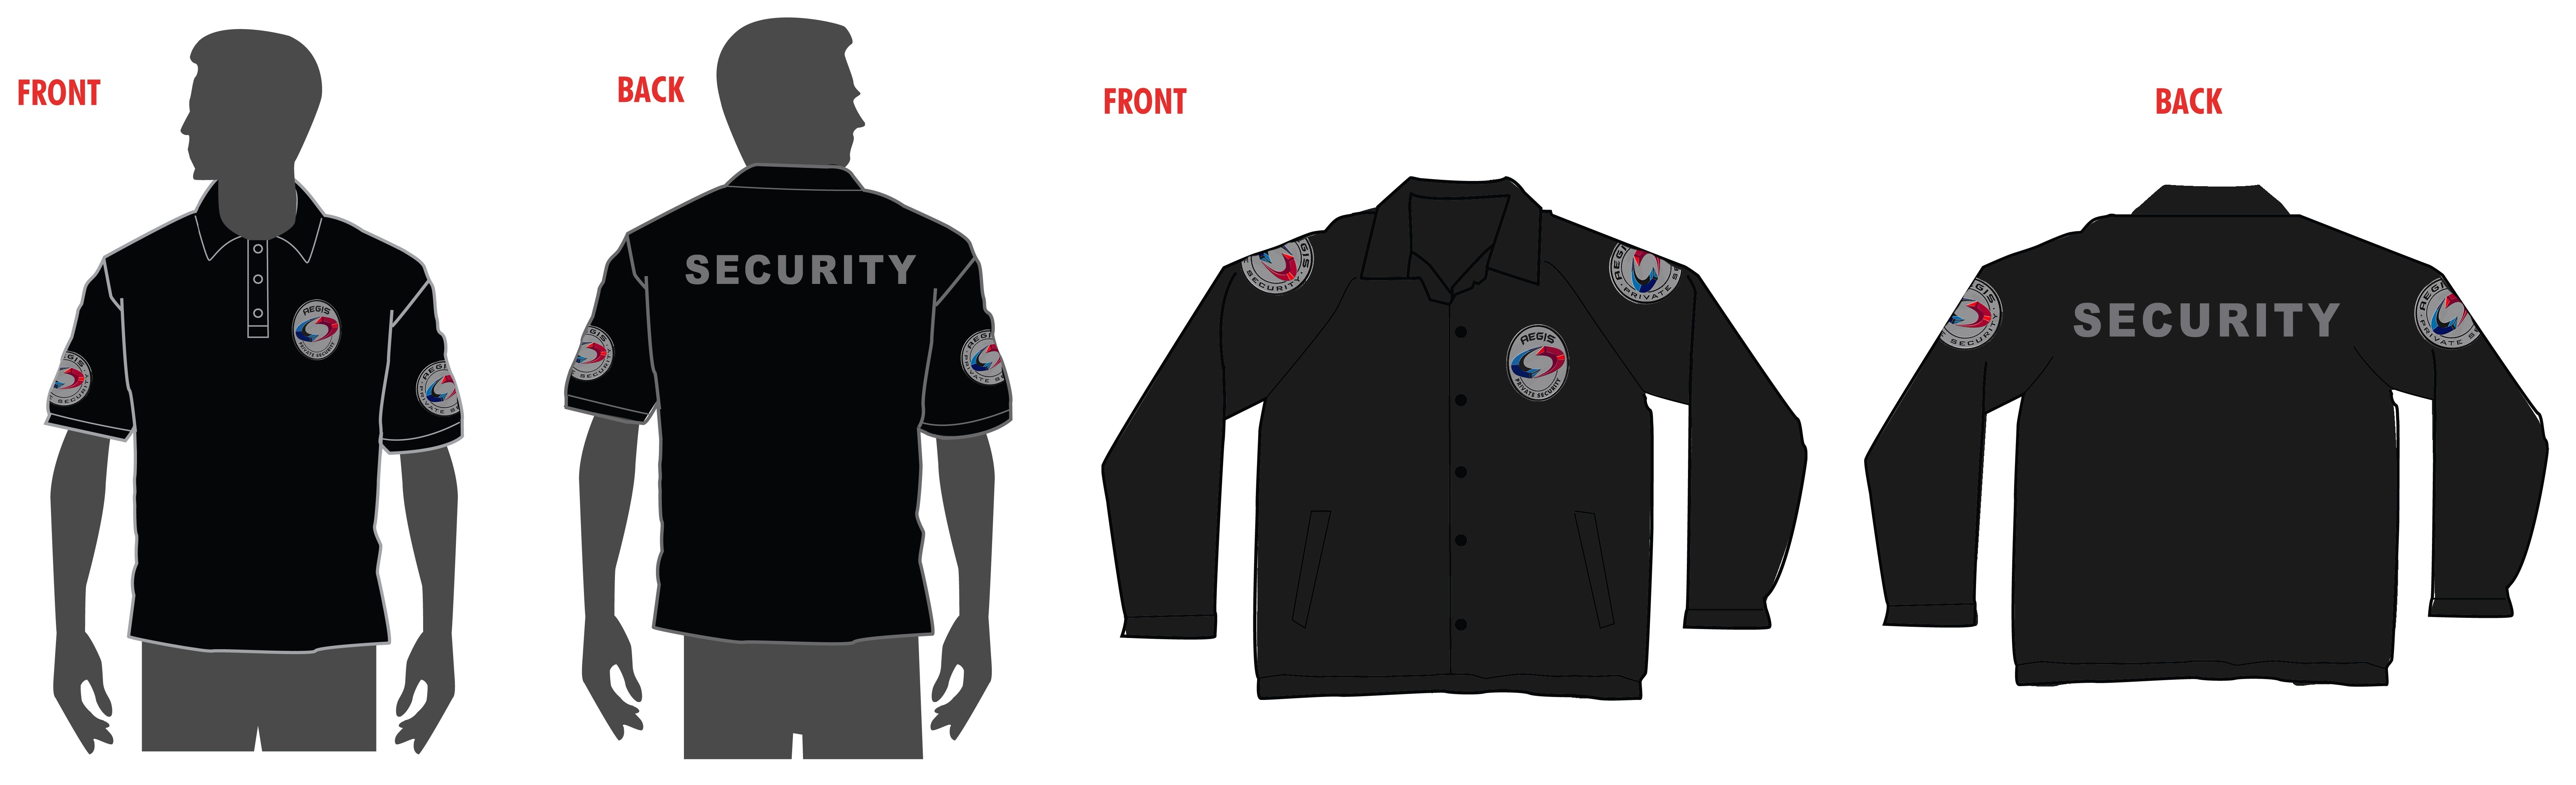 Shirts and Jackets - AEGIS Security & Investigations